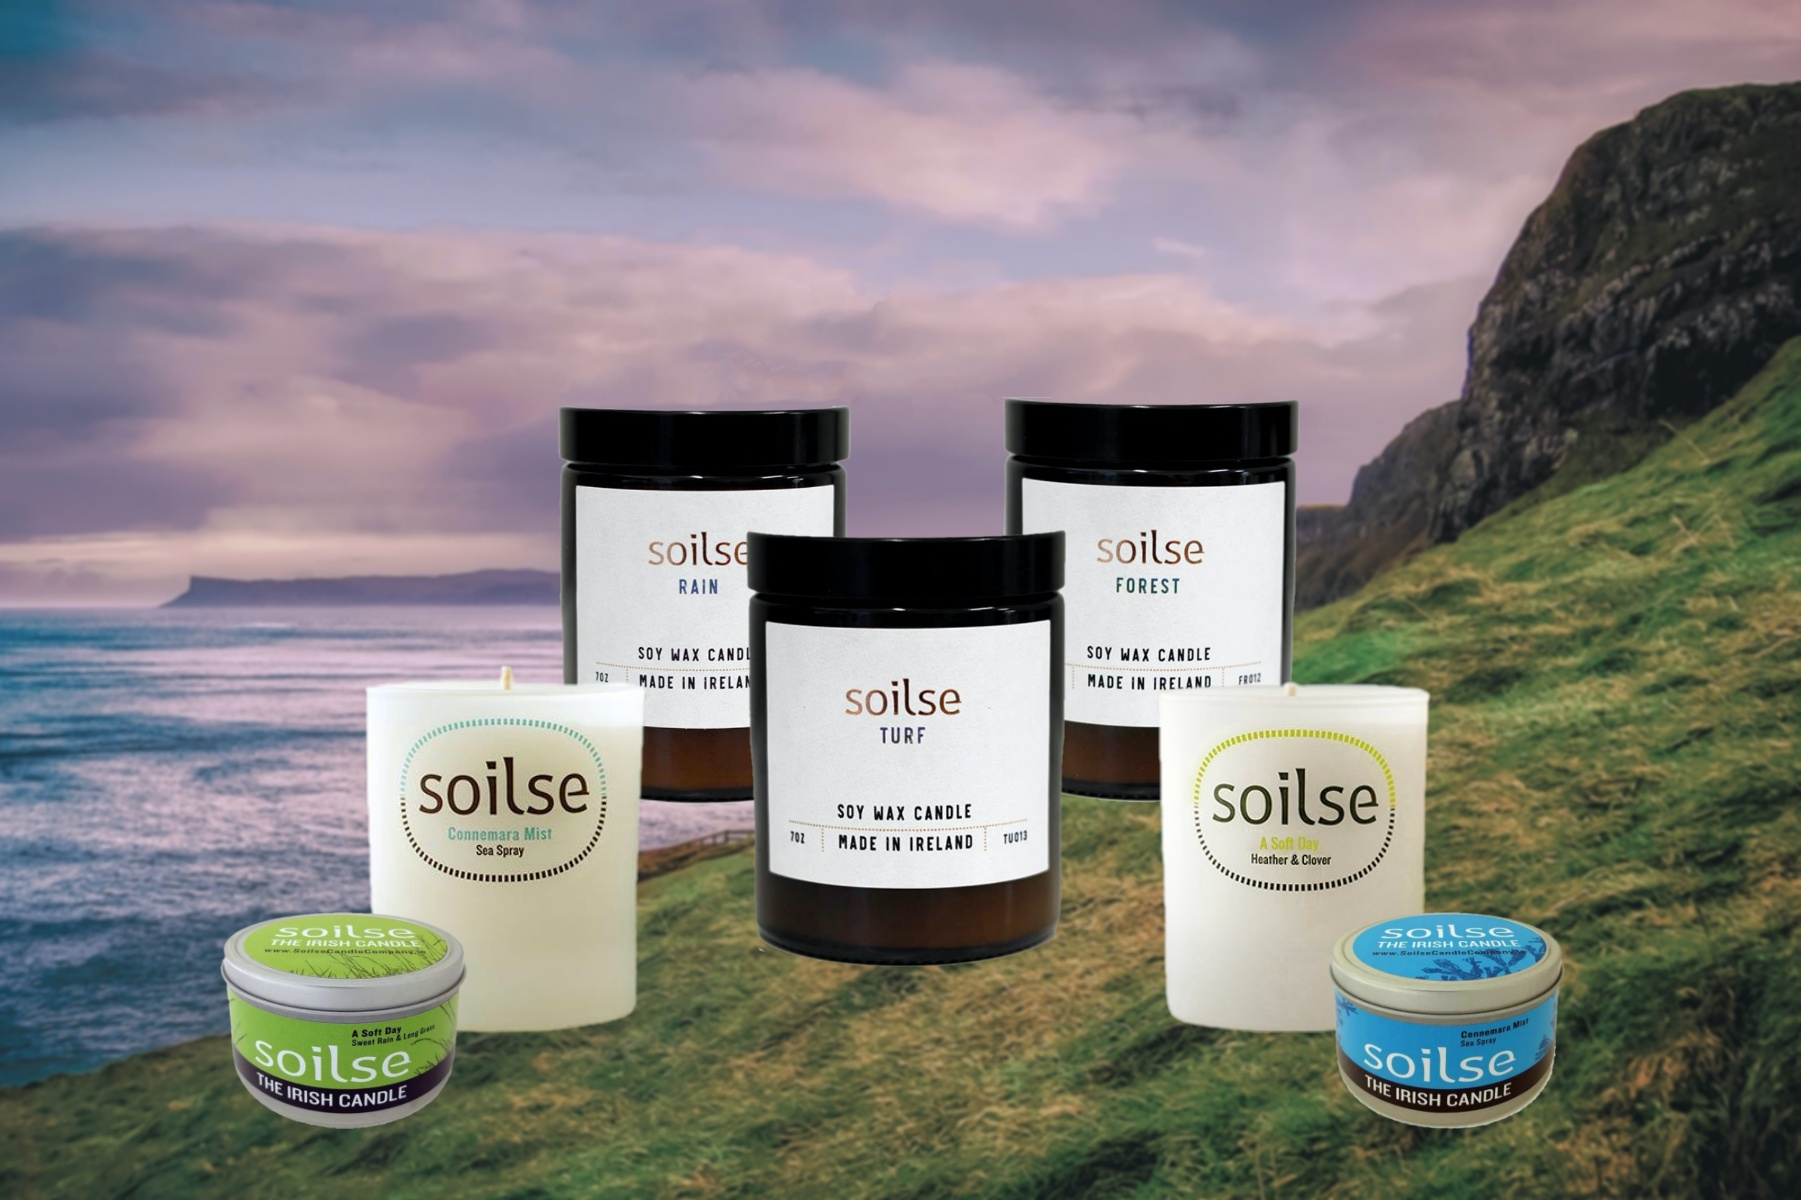 Awaken Your Senses with these Hand Poured Irish Candles